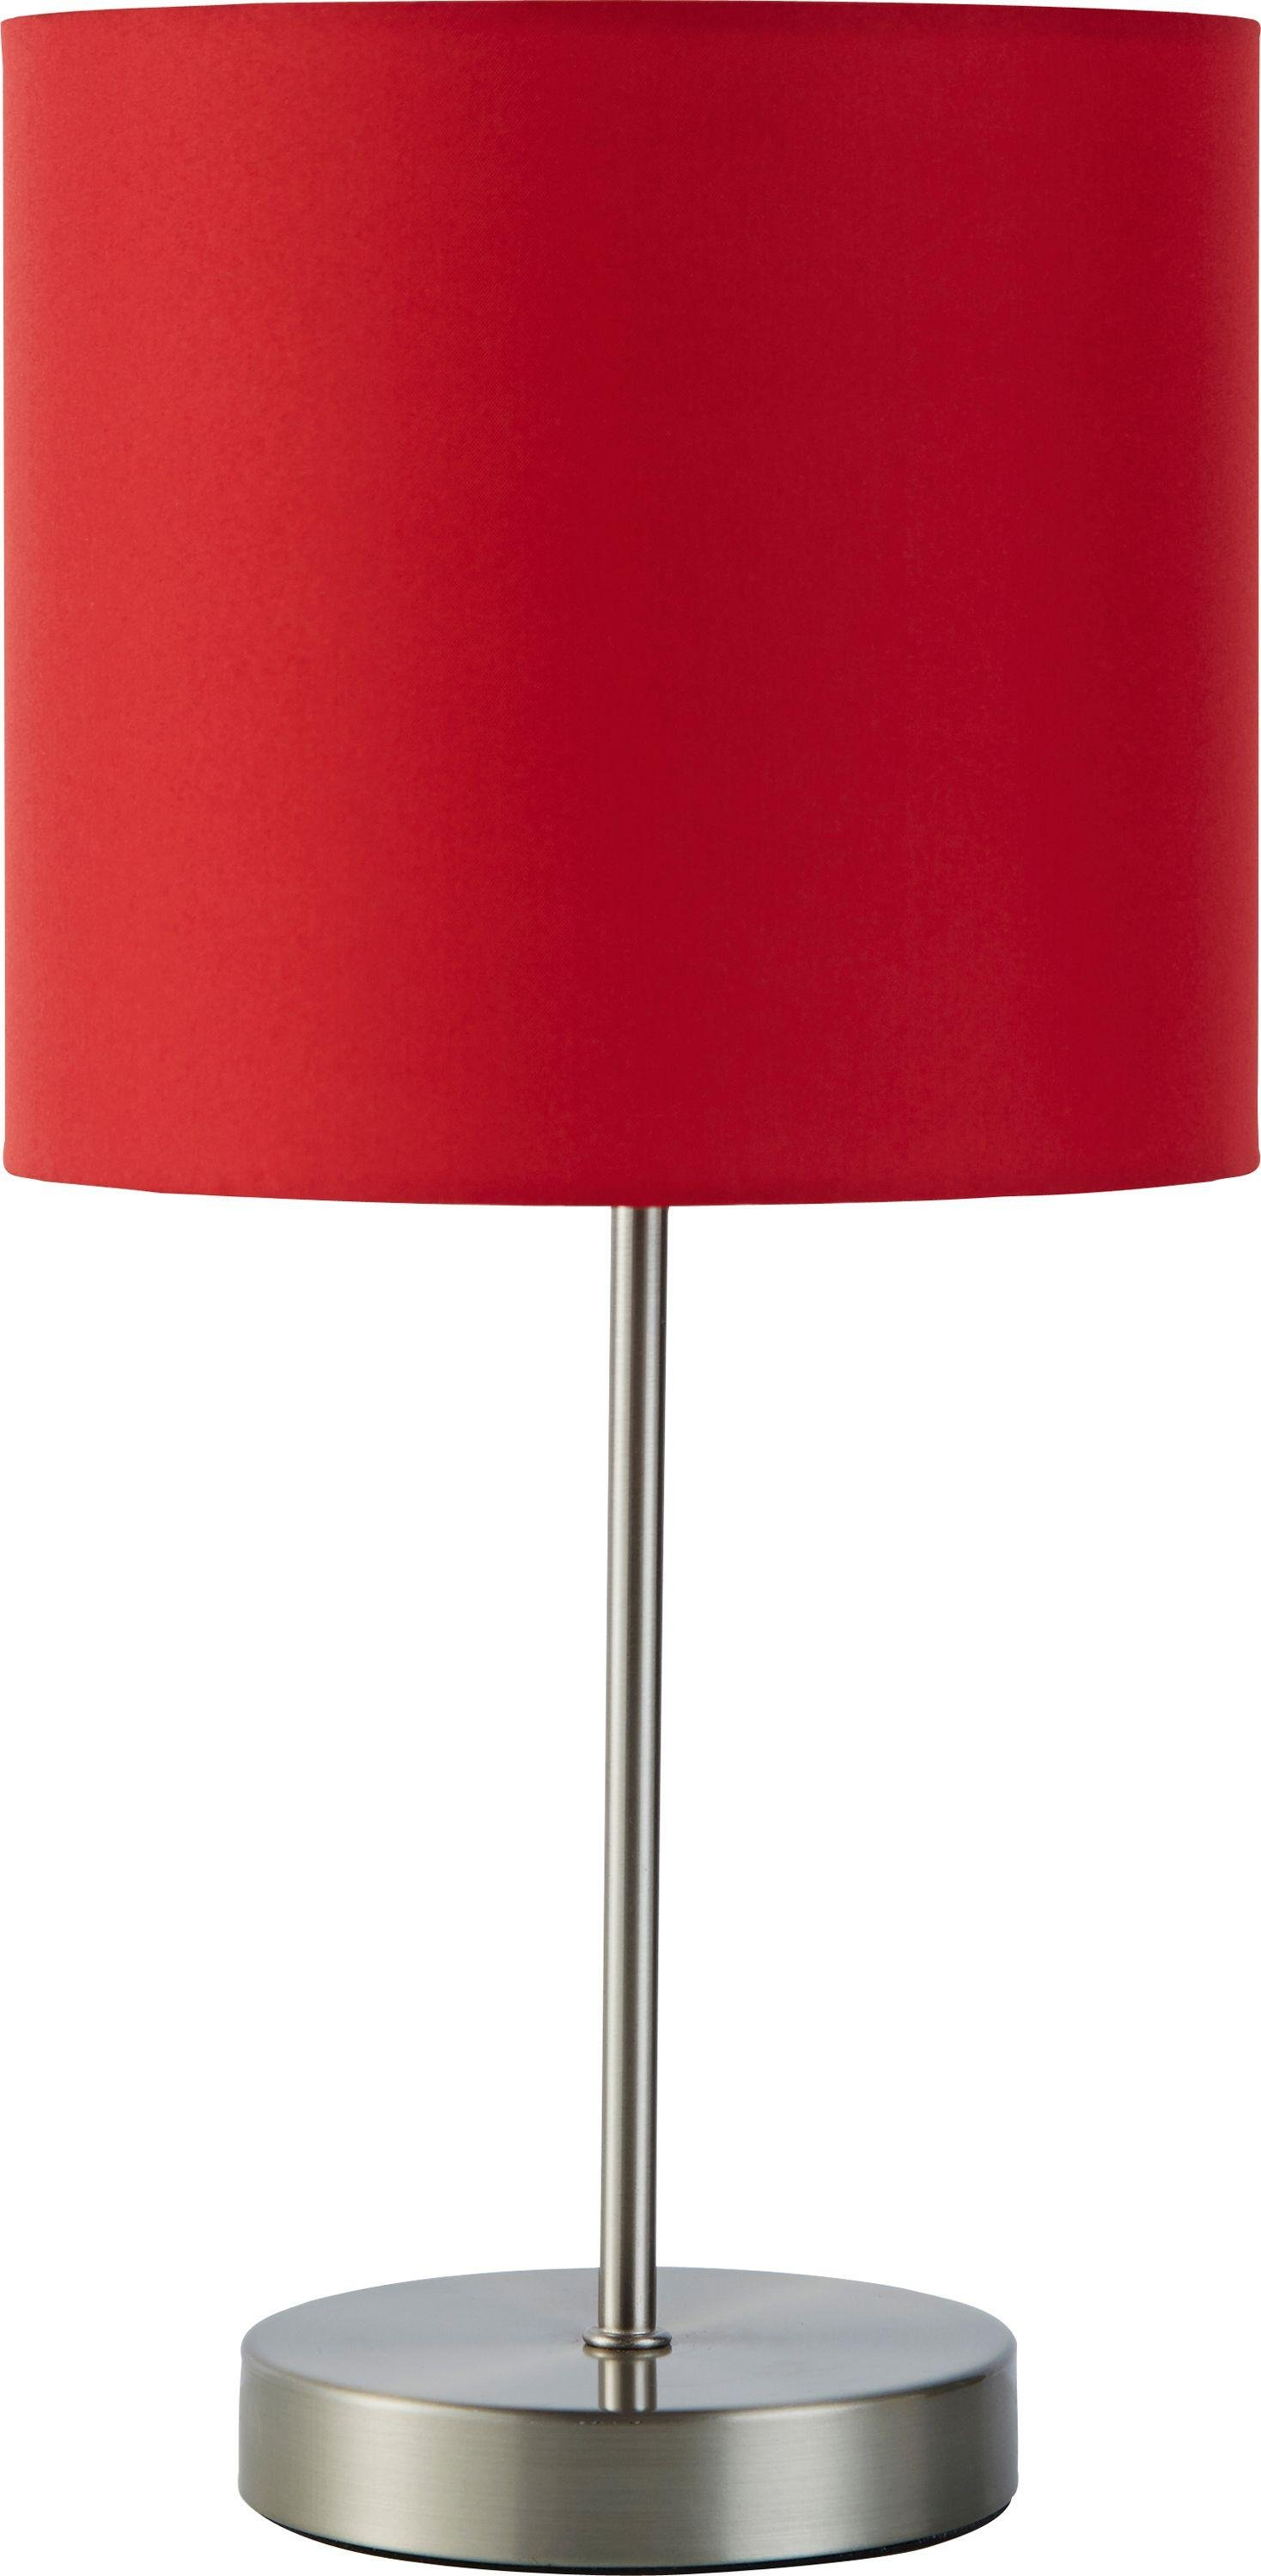 Argos Home Satin Stick Table Lamp - Poppy Red